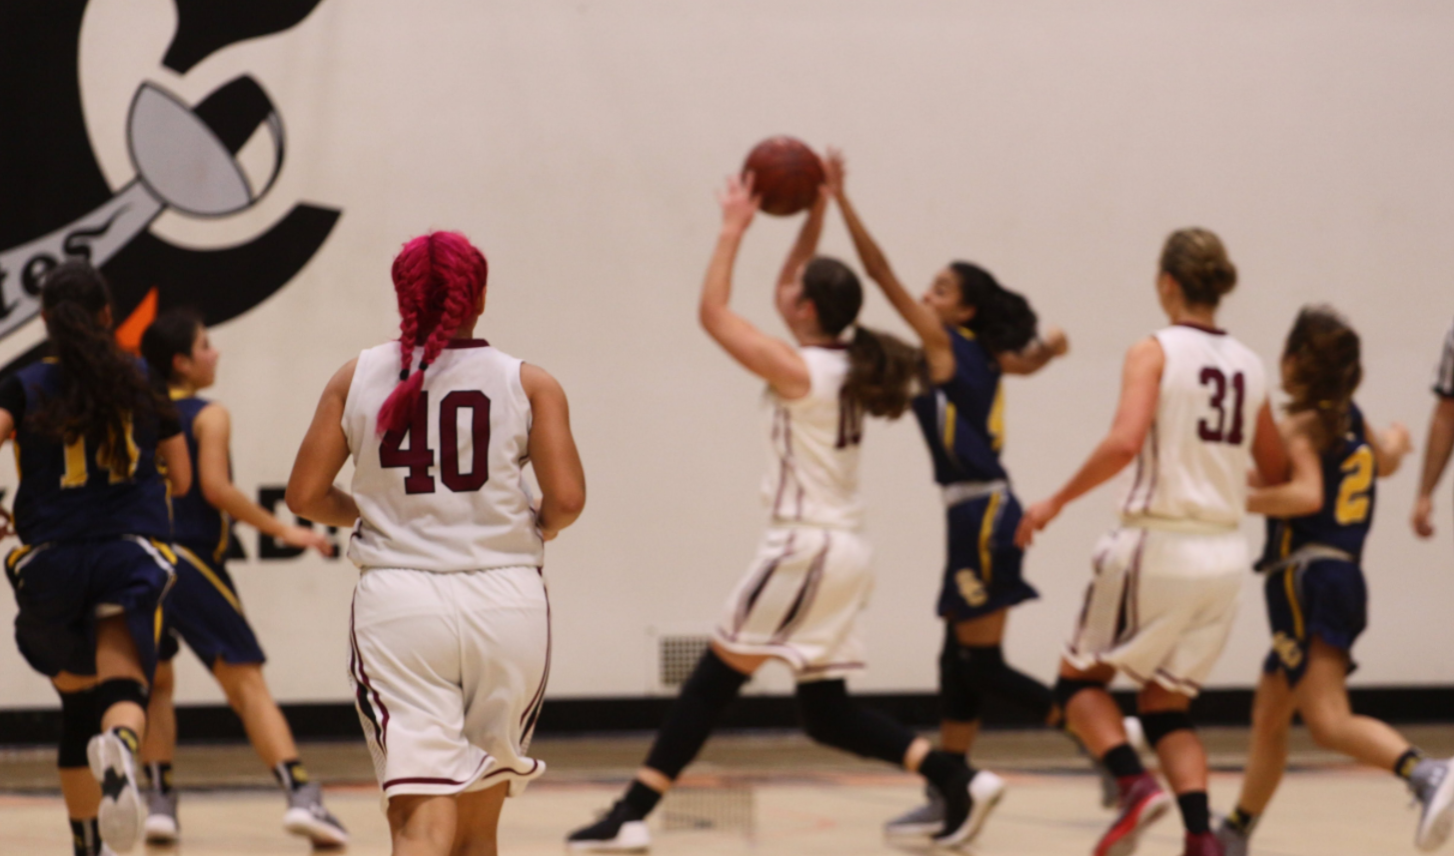 Girls' basketball snares win over Saints in first home game of season